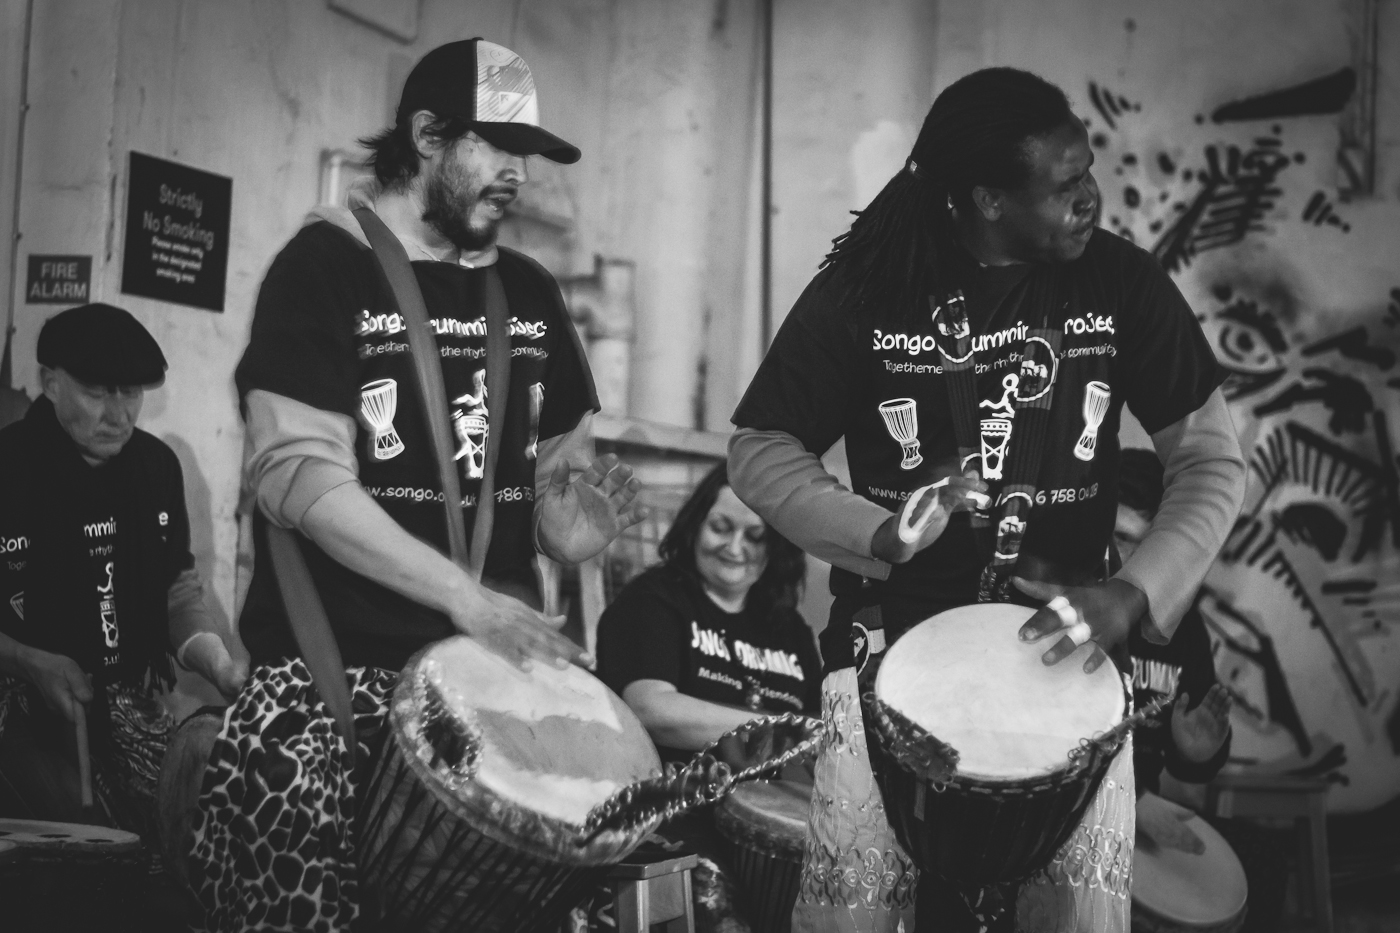 Together we're stronger just as SONGO drummers